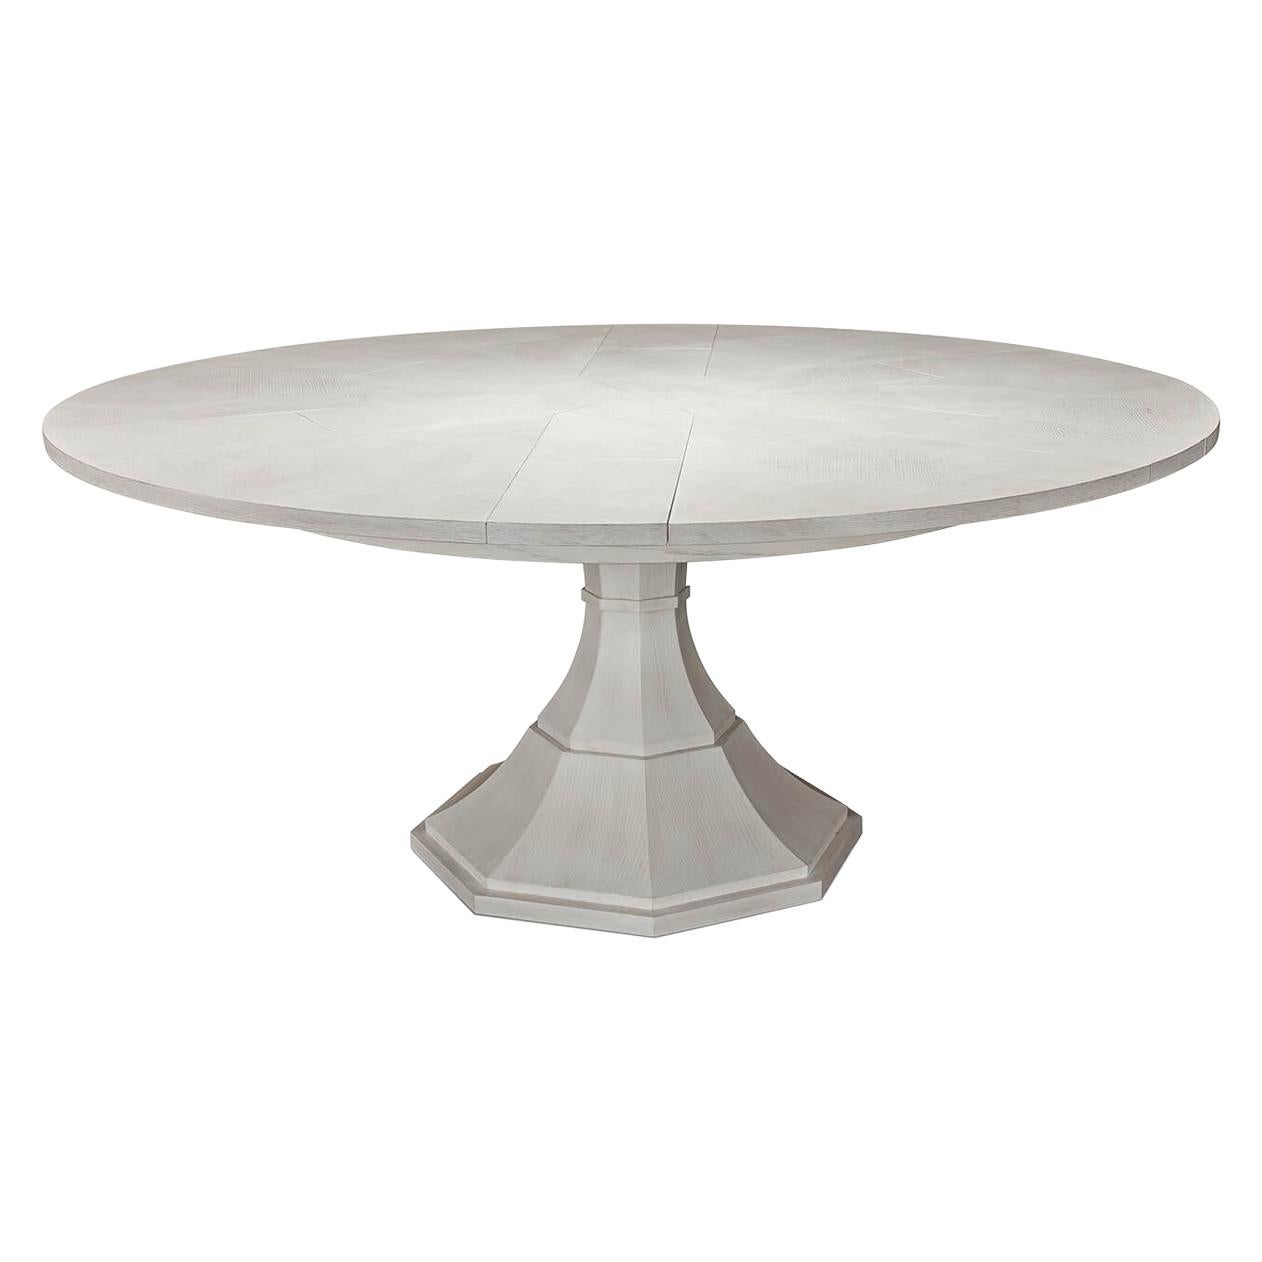 Modern Round Jupe Dining Table